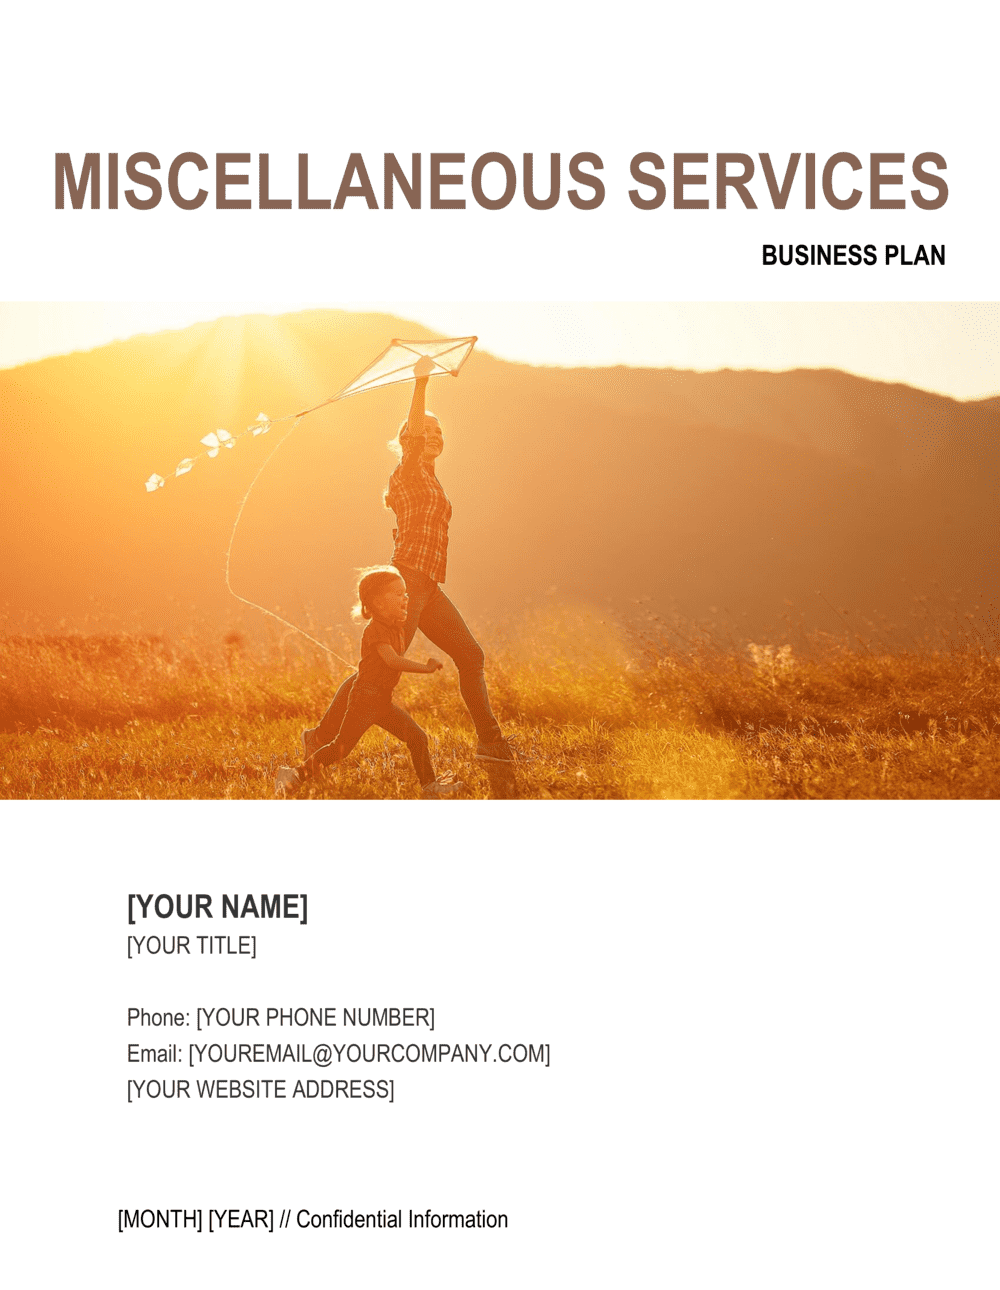 Business-in-a-Box's Miscellaneous Services Business Plan 2 Template